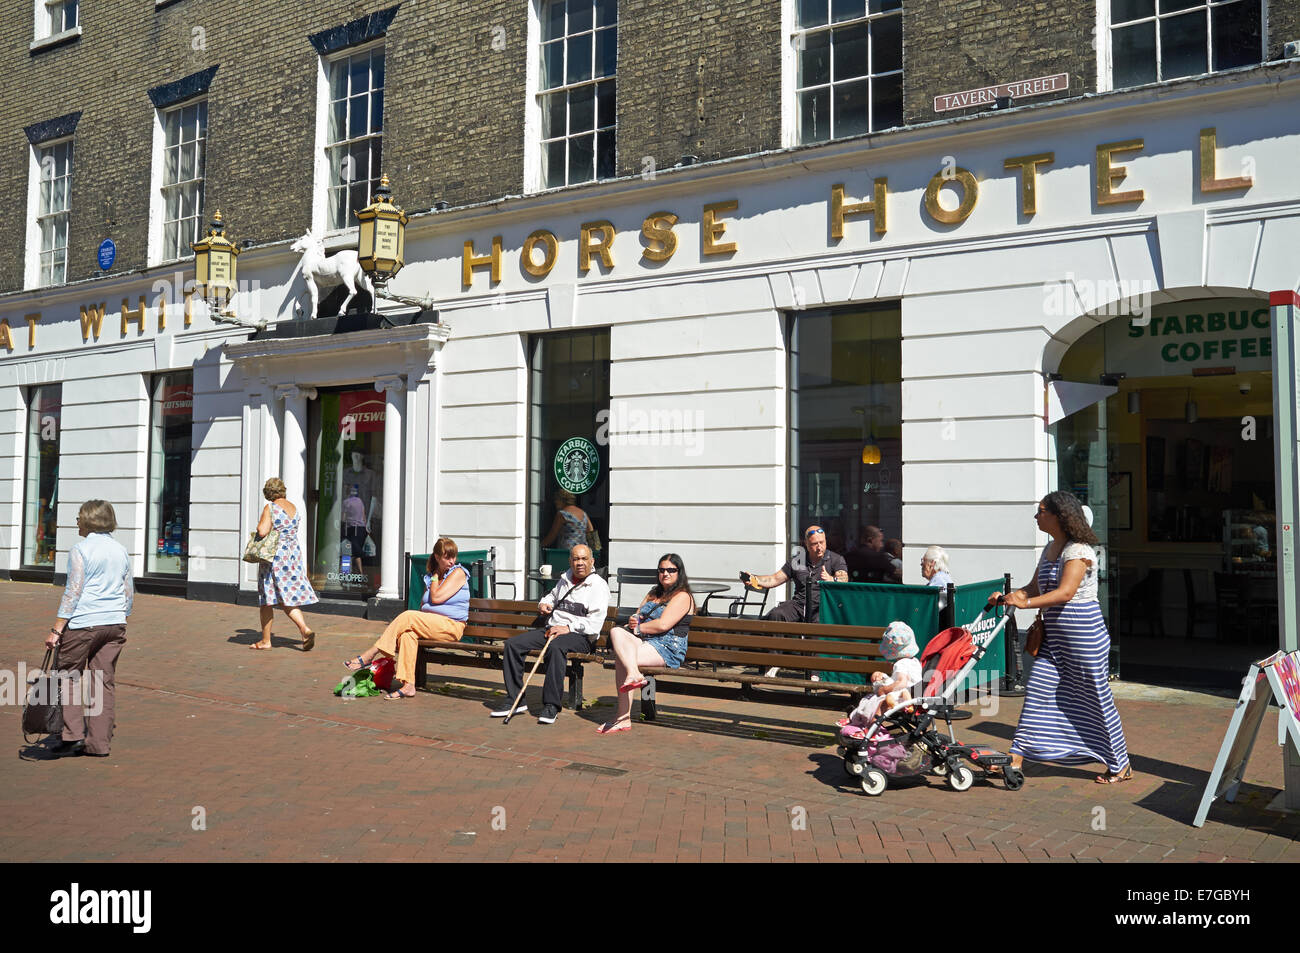 The Great White Horse Hotel (now retail outlets) Ipswich Suffolk UK - Stock Image